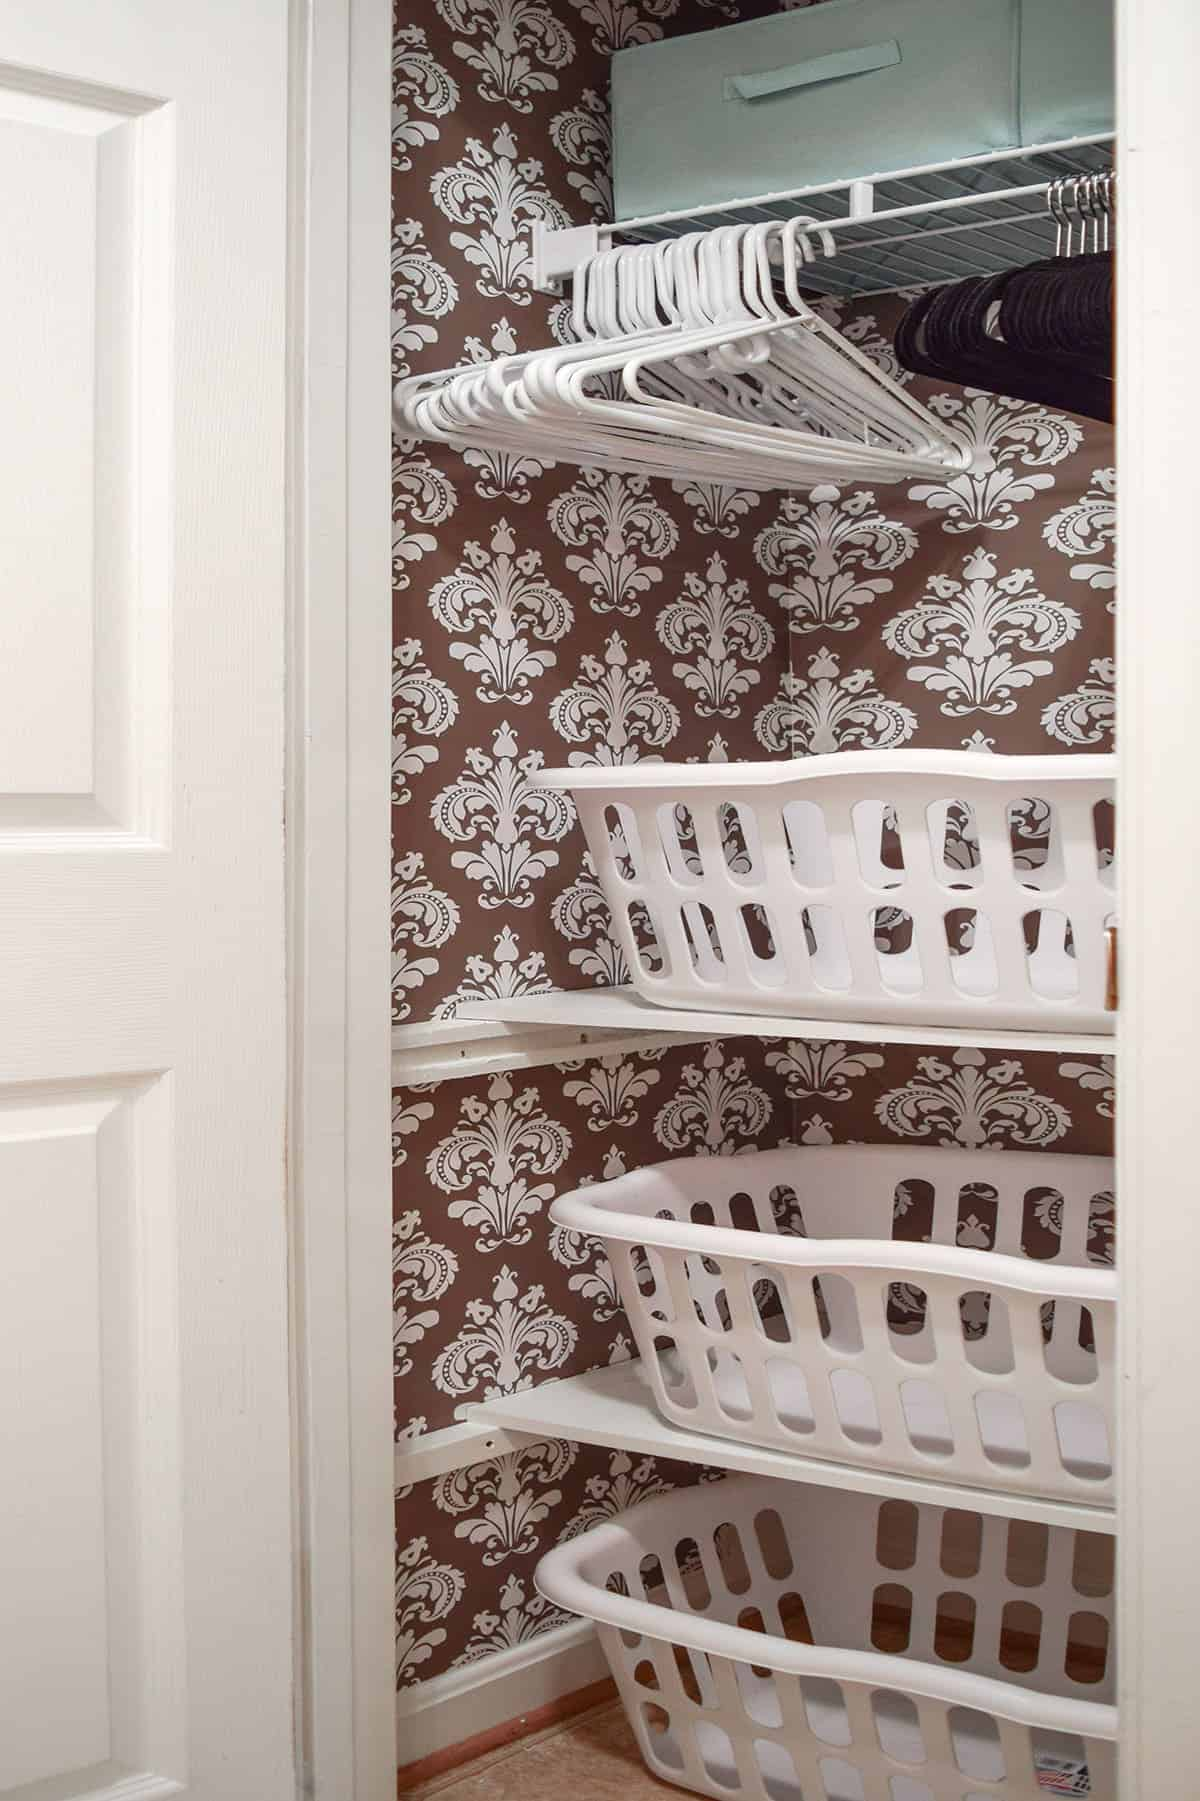 Stackable laundry bins in closet for organization.